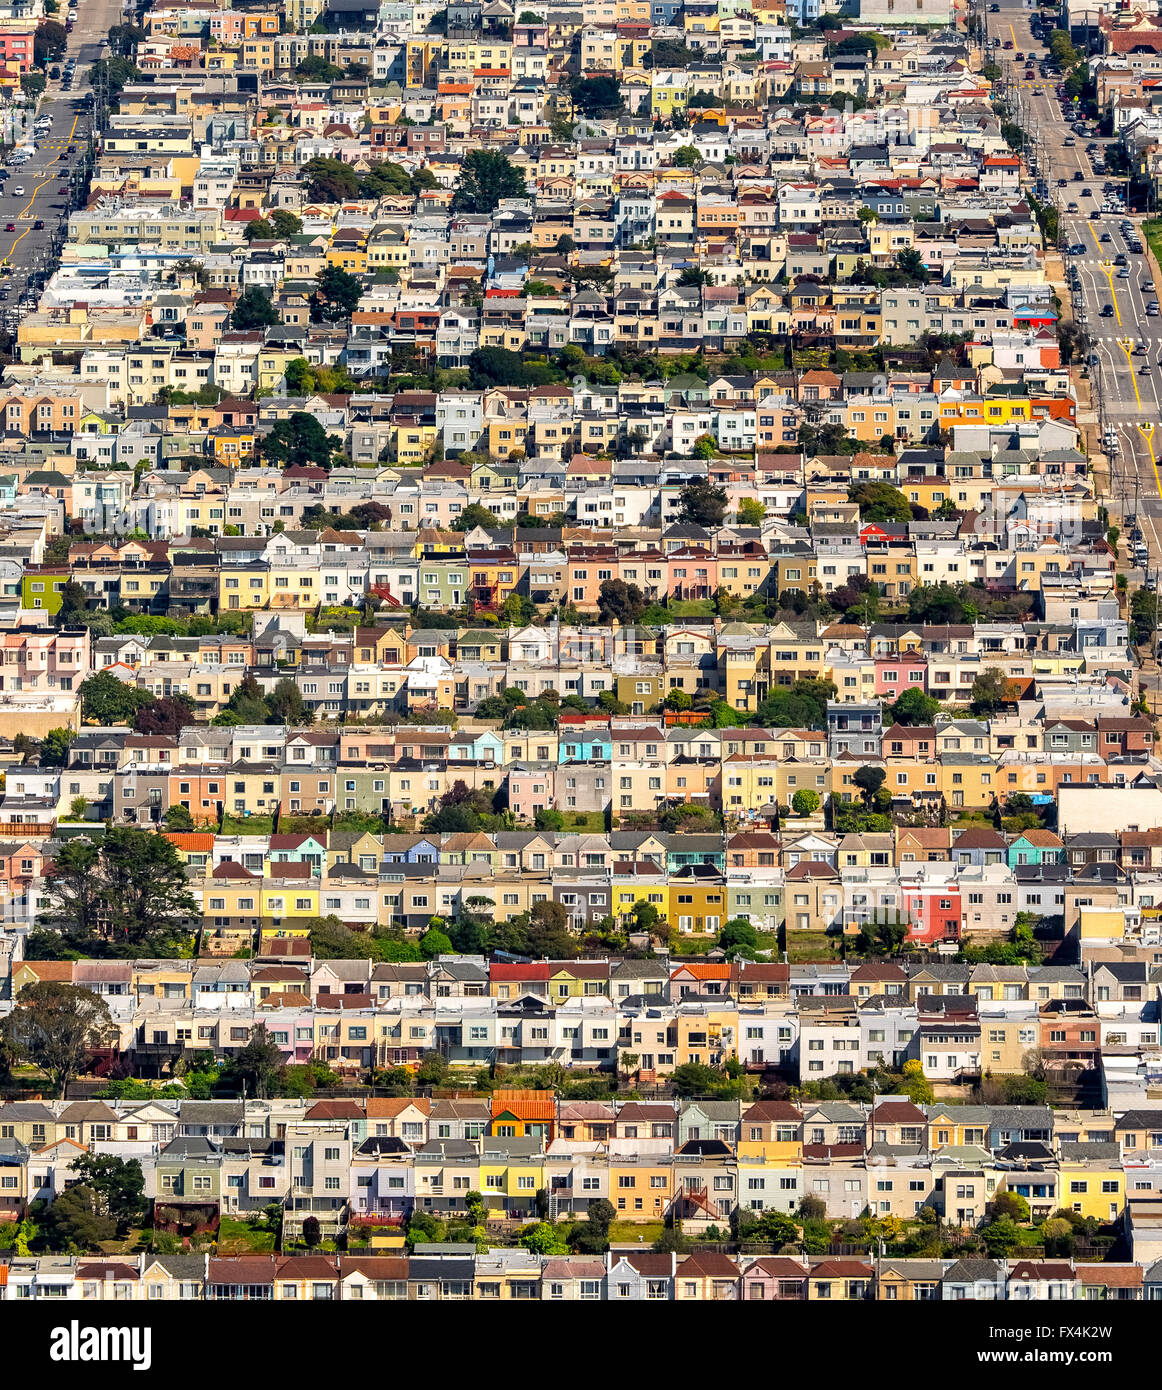 Aerial View, Living Series, House Series, Doelger City, Outer Sunset, West  Of San Francisco, Rows Of Houses, San Francisco, Bay